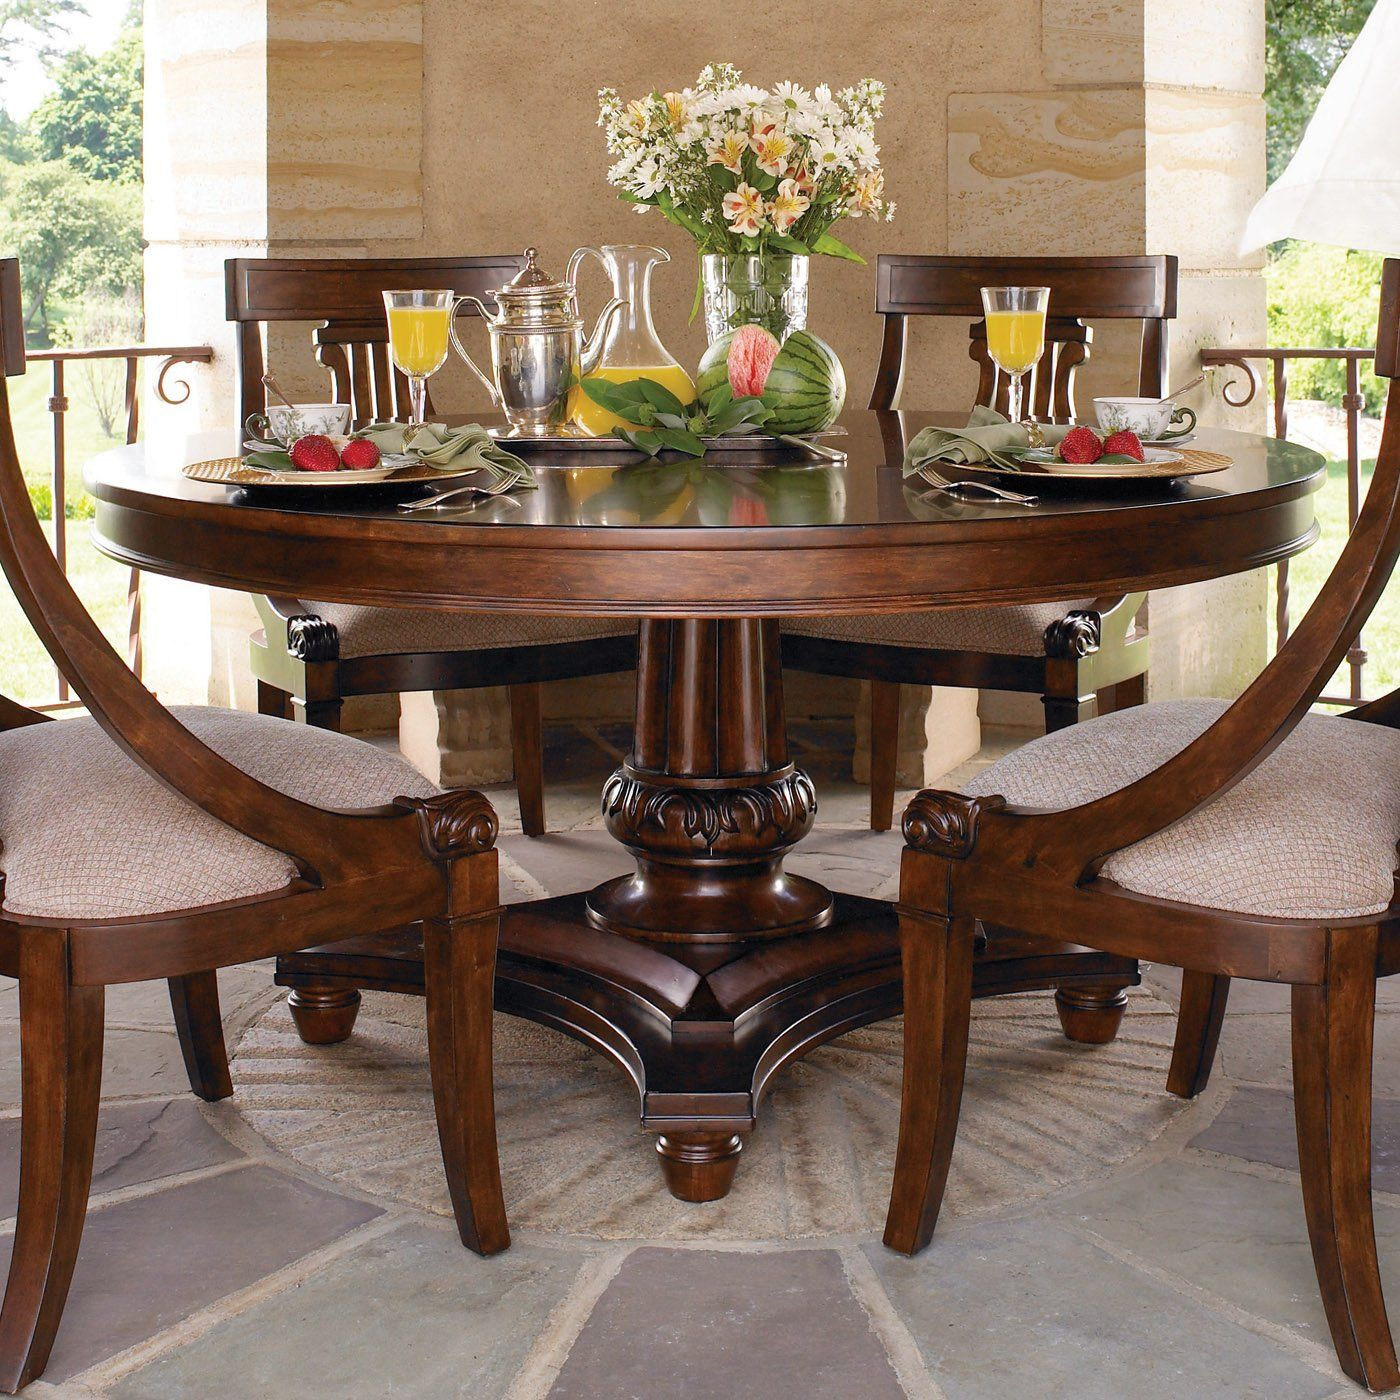 404 Whoops Page Not Found Round Dining Room Sets Dining Table Design Round Dining